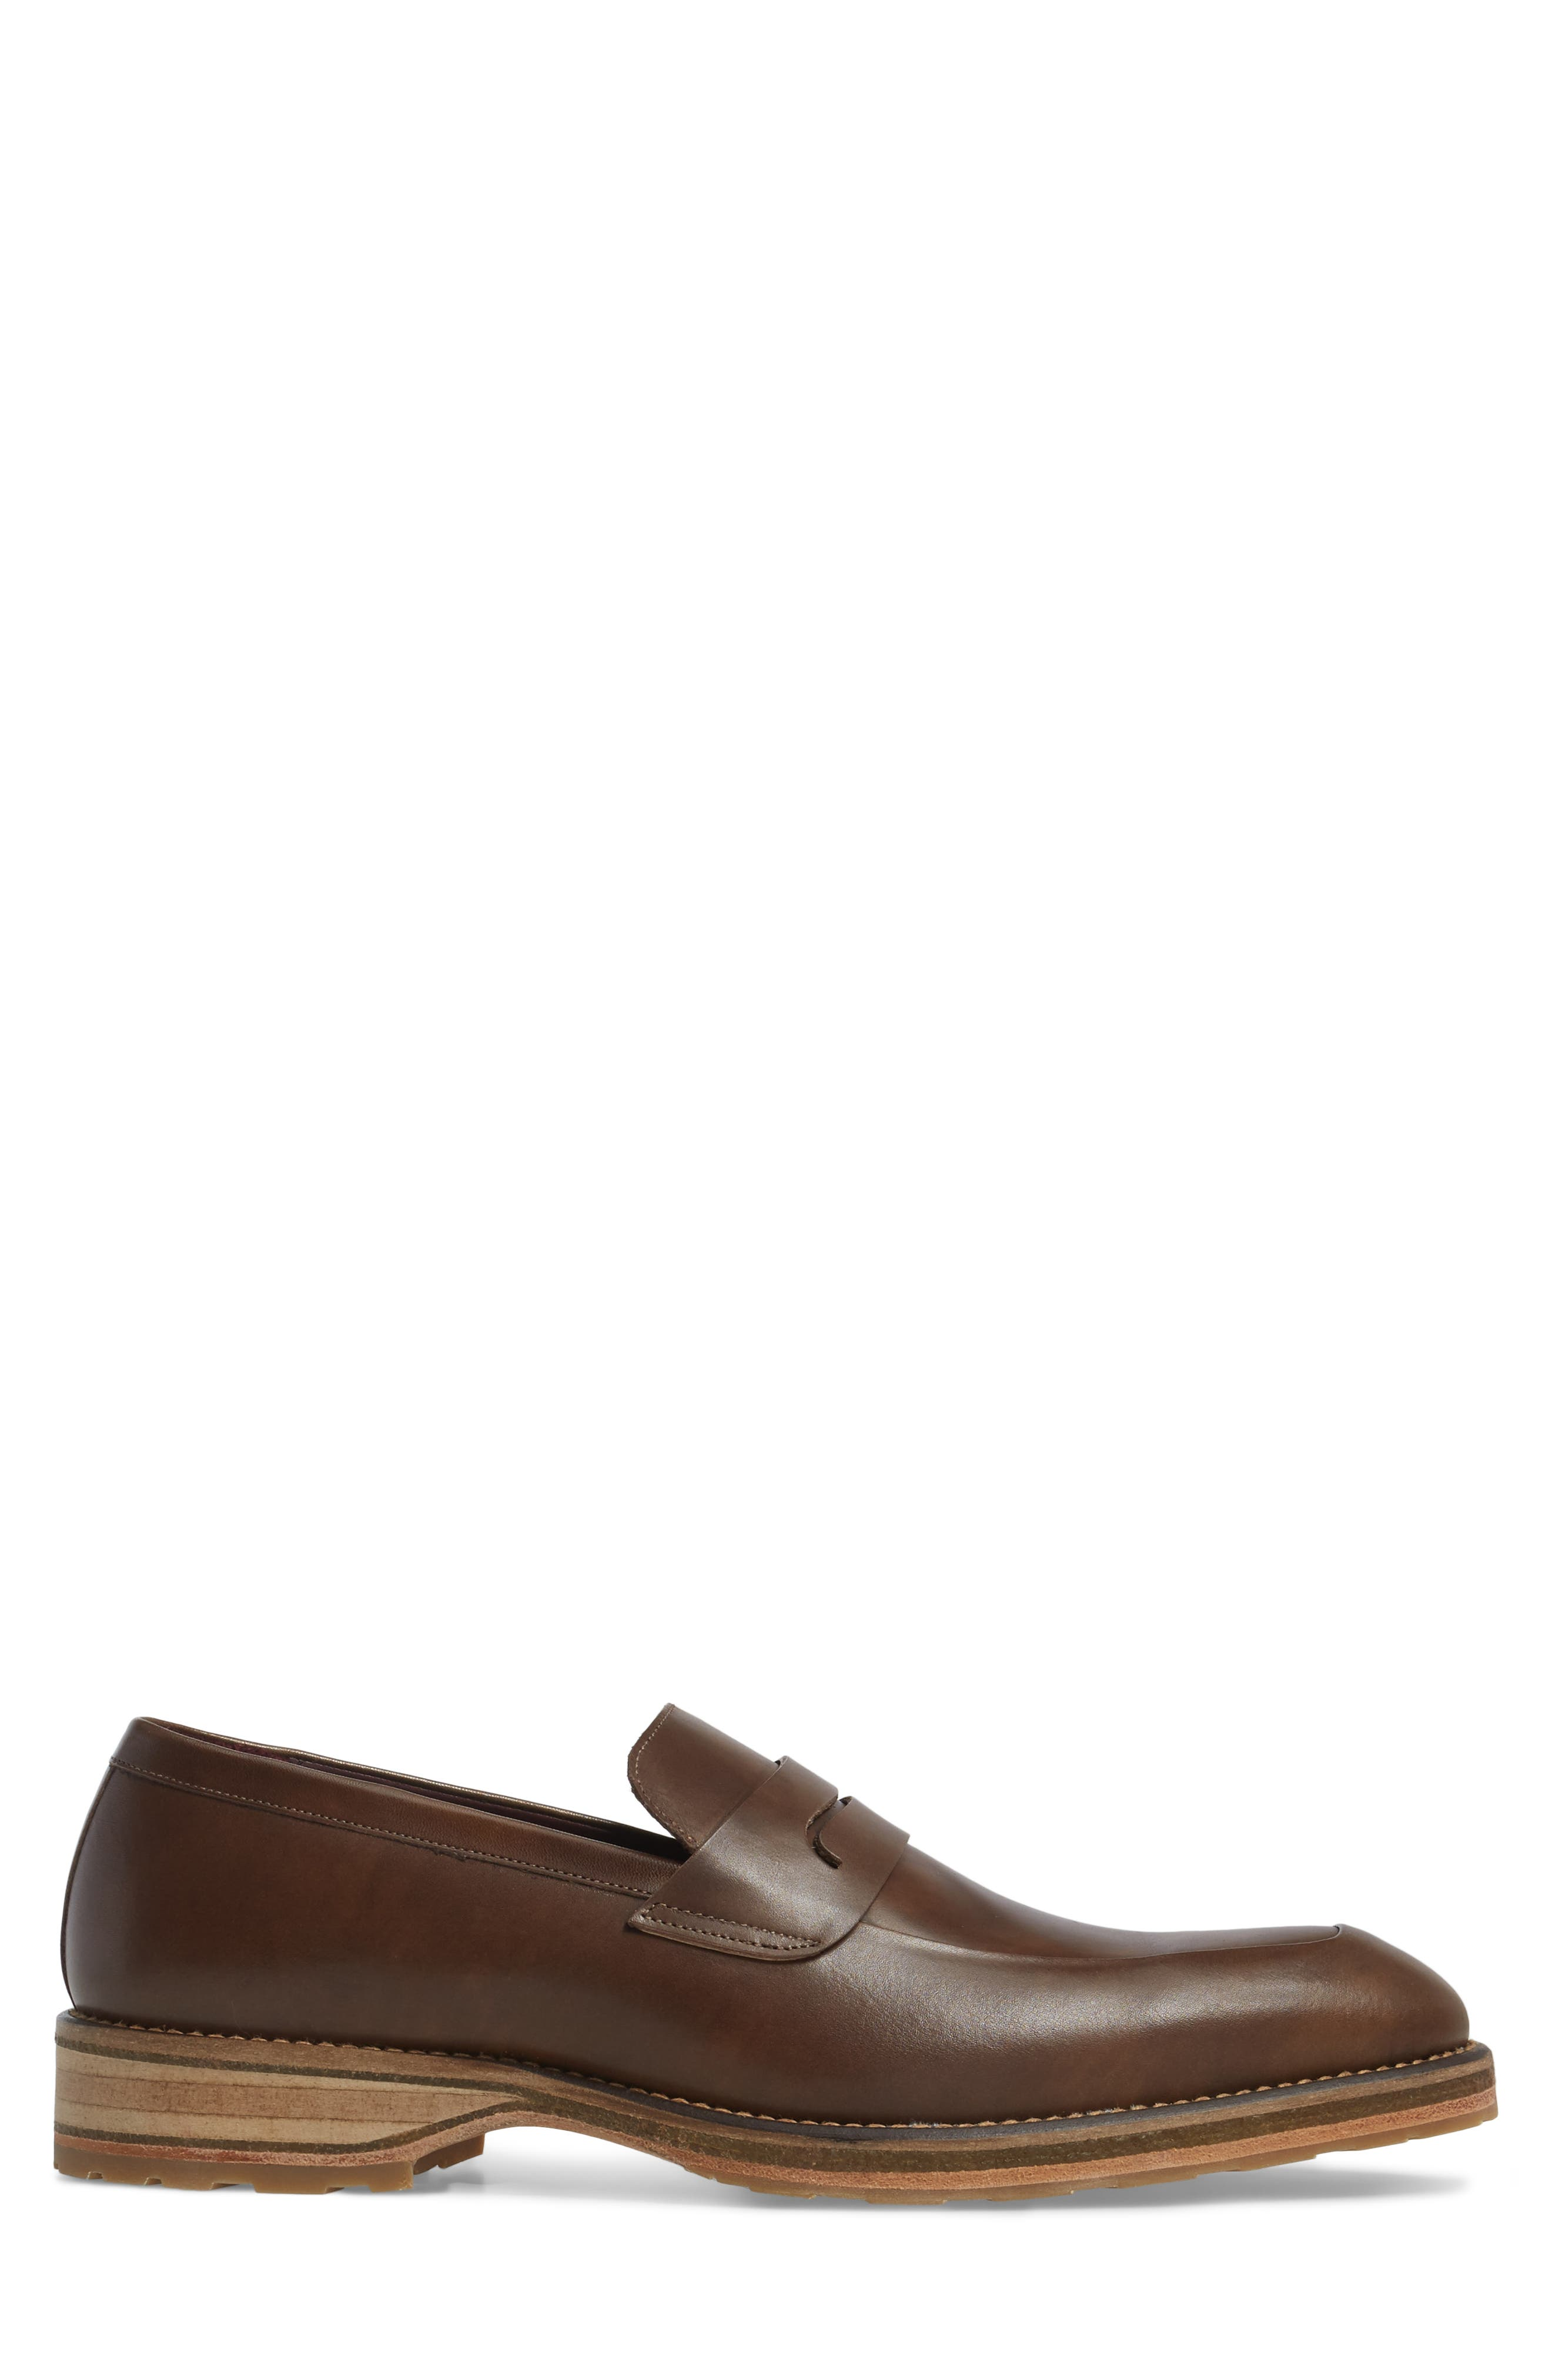 Cantonia Penny Loafer,                             Alternate thumbnail 3, color,                             Taupe Leather